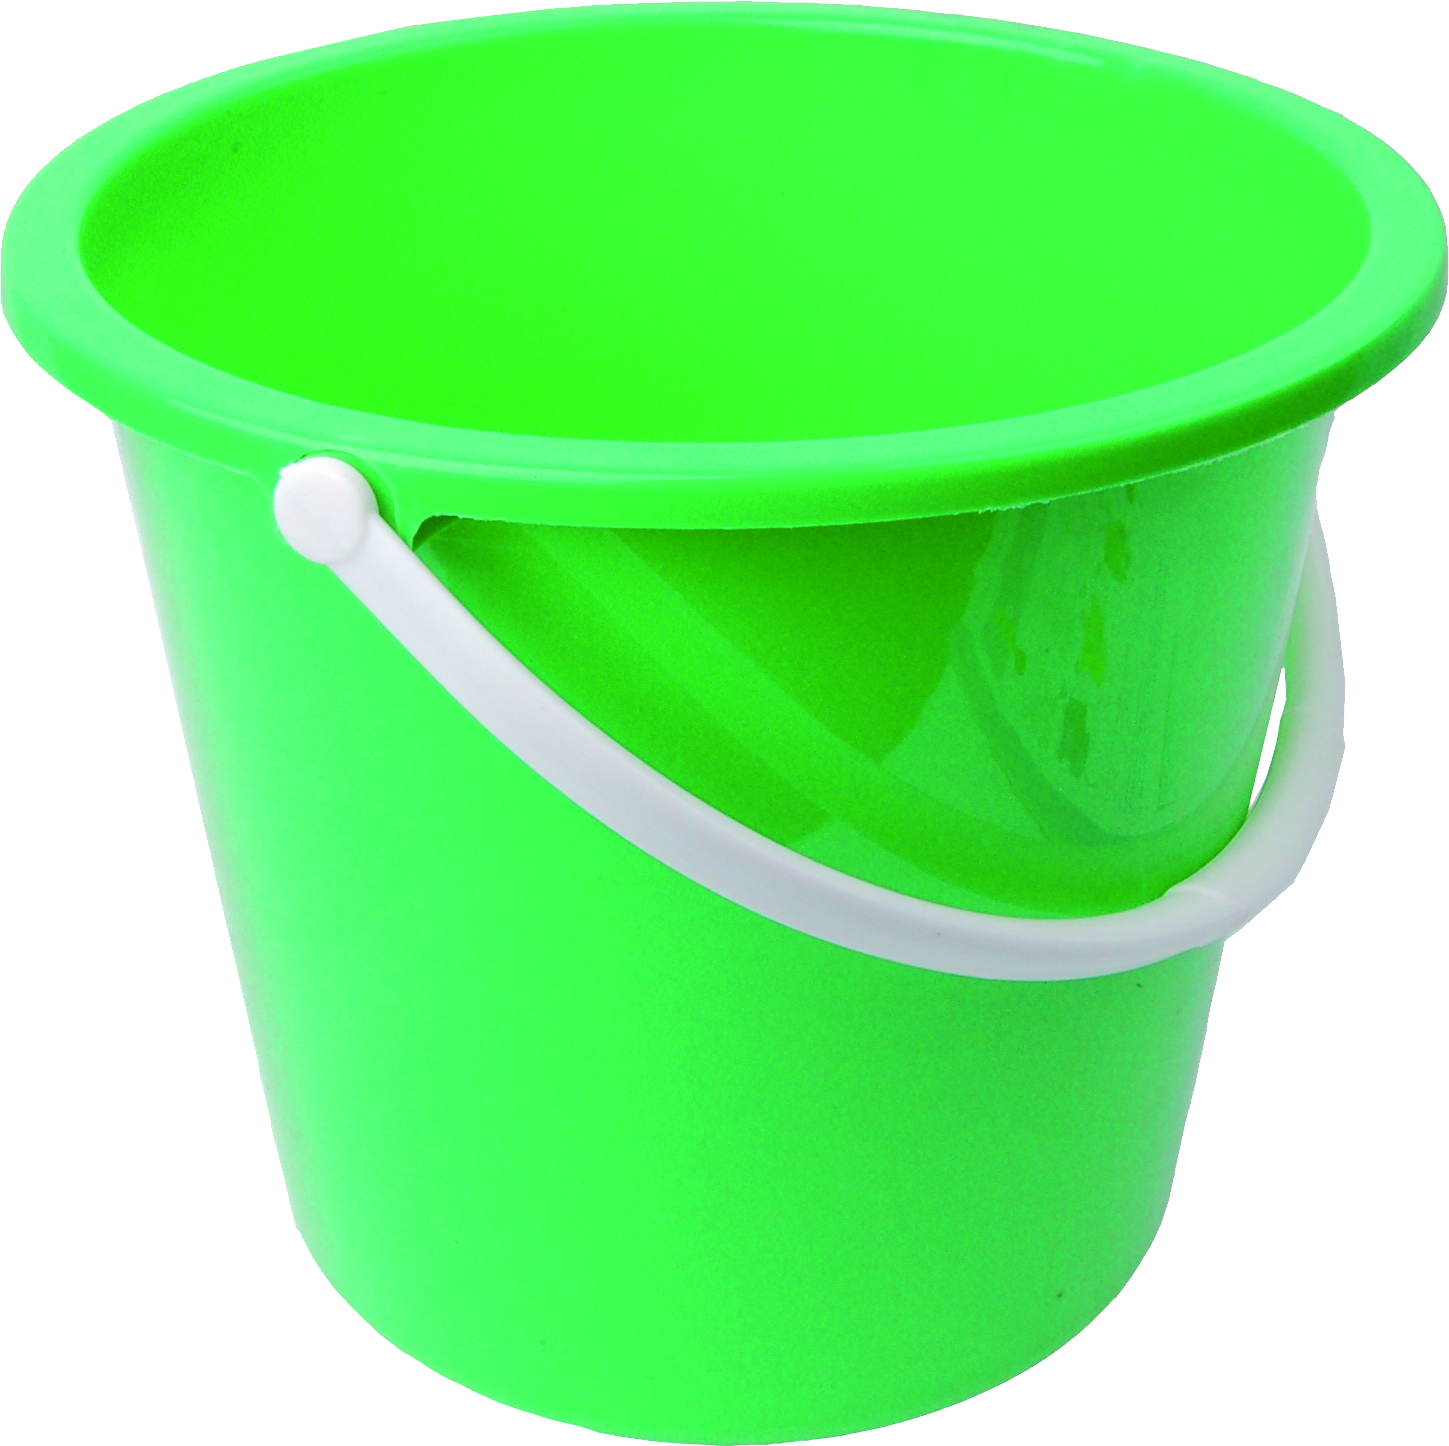 Bucket transparent small plastic. Collection of free bulti